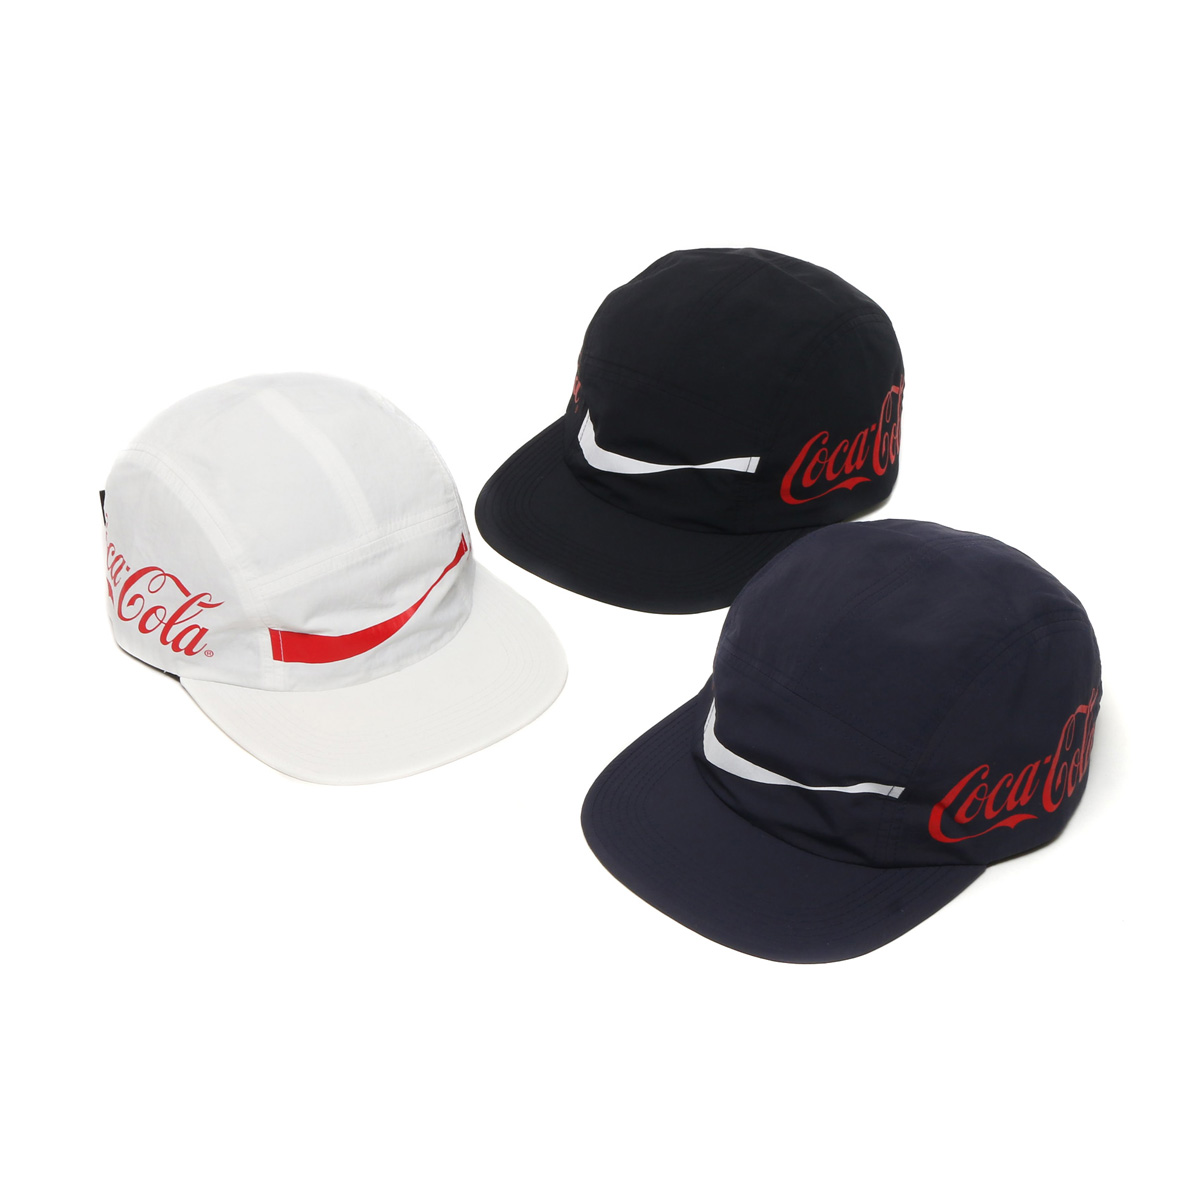 COCA-COLA by ATMOS LAB 5 PANEL CAP